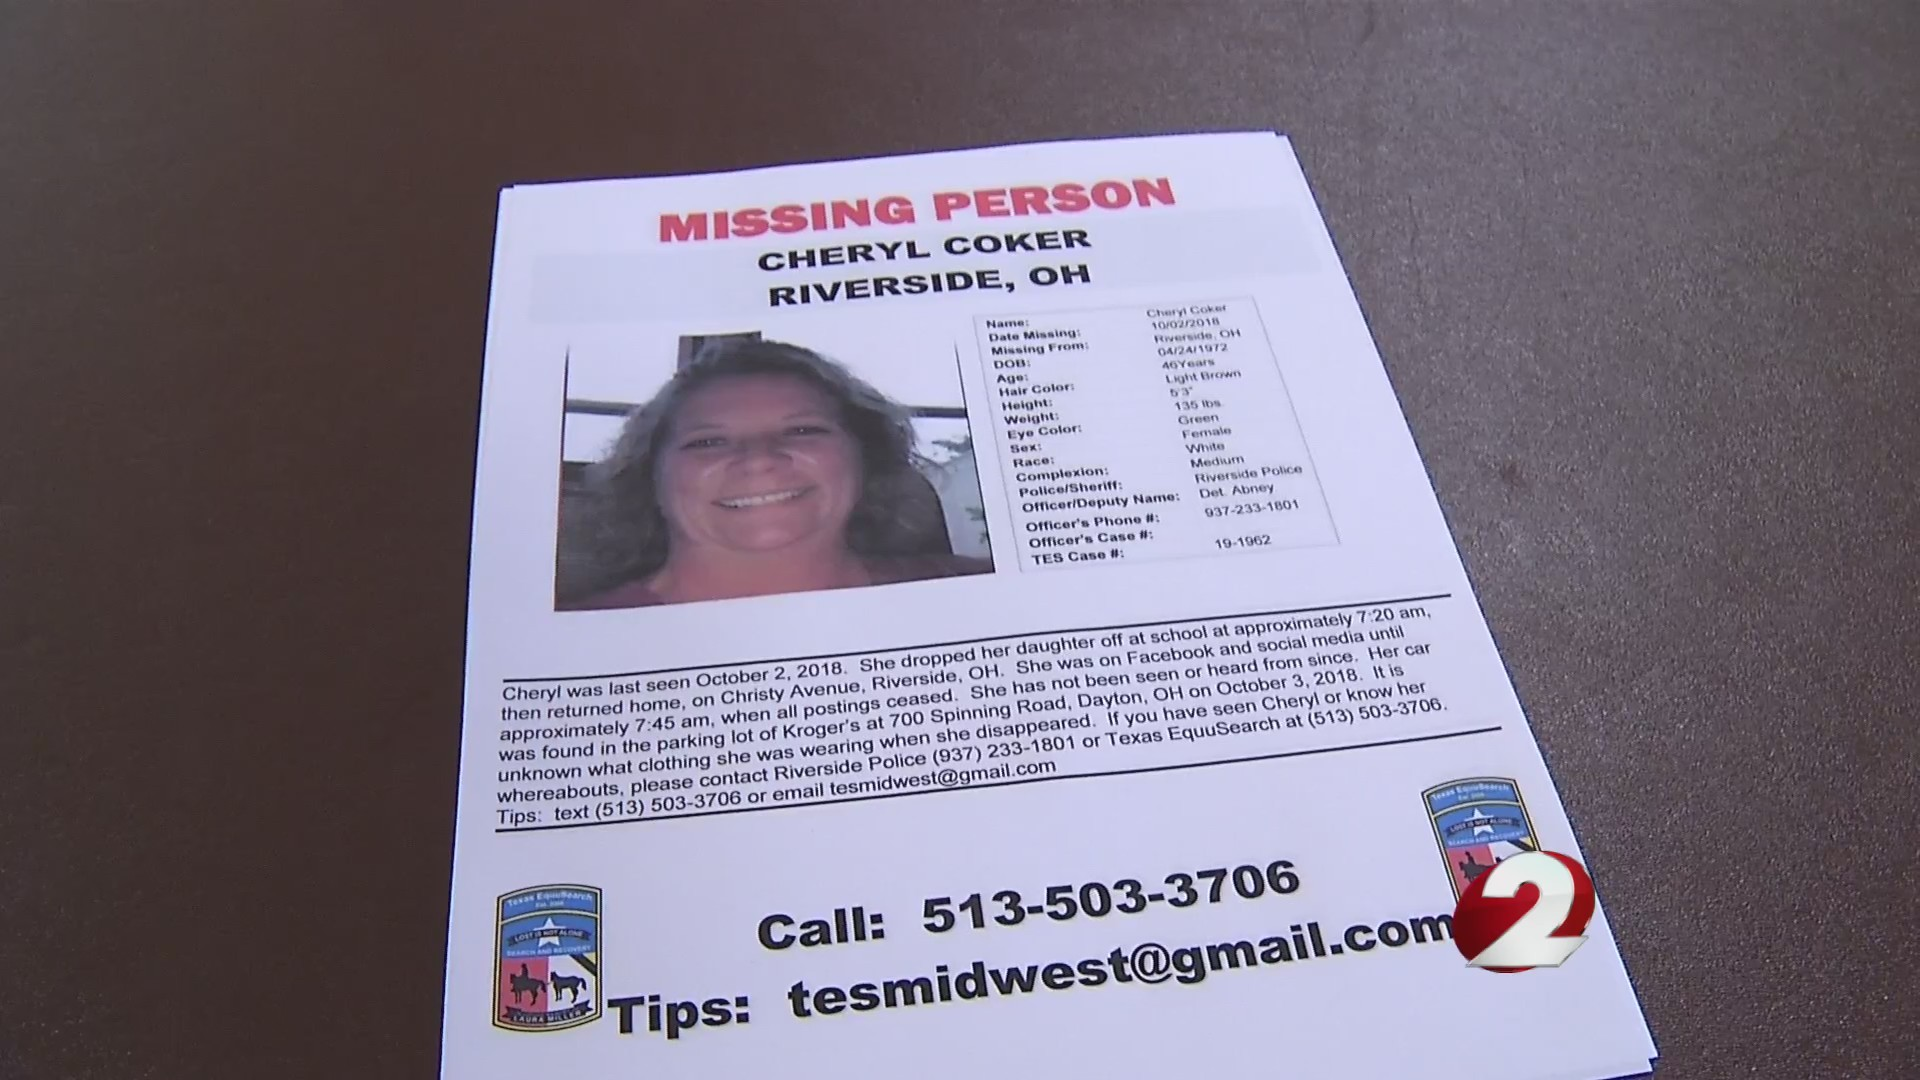 Search for Cheryl Coker scheduled Saturday